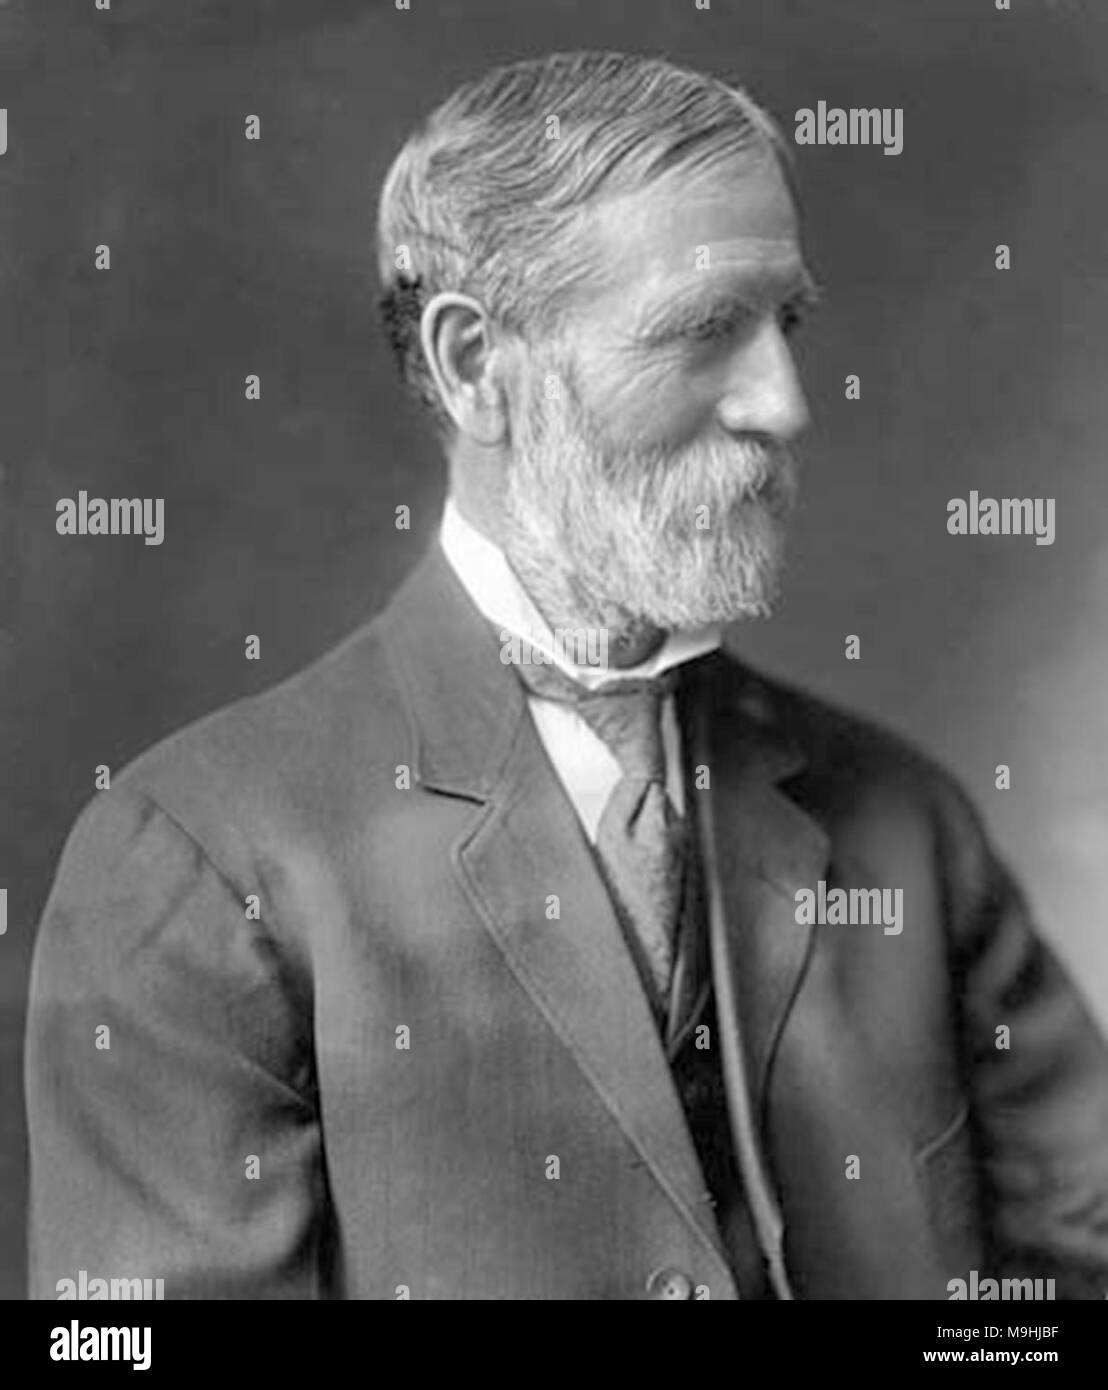 Freelan Oscar Stanley (1849 – 1940) American inventor, best remembered as the co-founder, along with his twin brother Francis Edgar Stanley, of the Stanley Motor Carriage Company which built steam-powered automobiles until 1920 - Stock Image